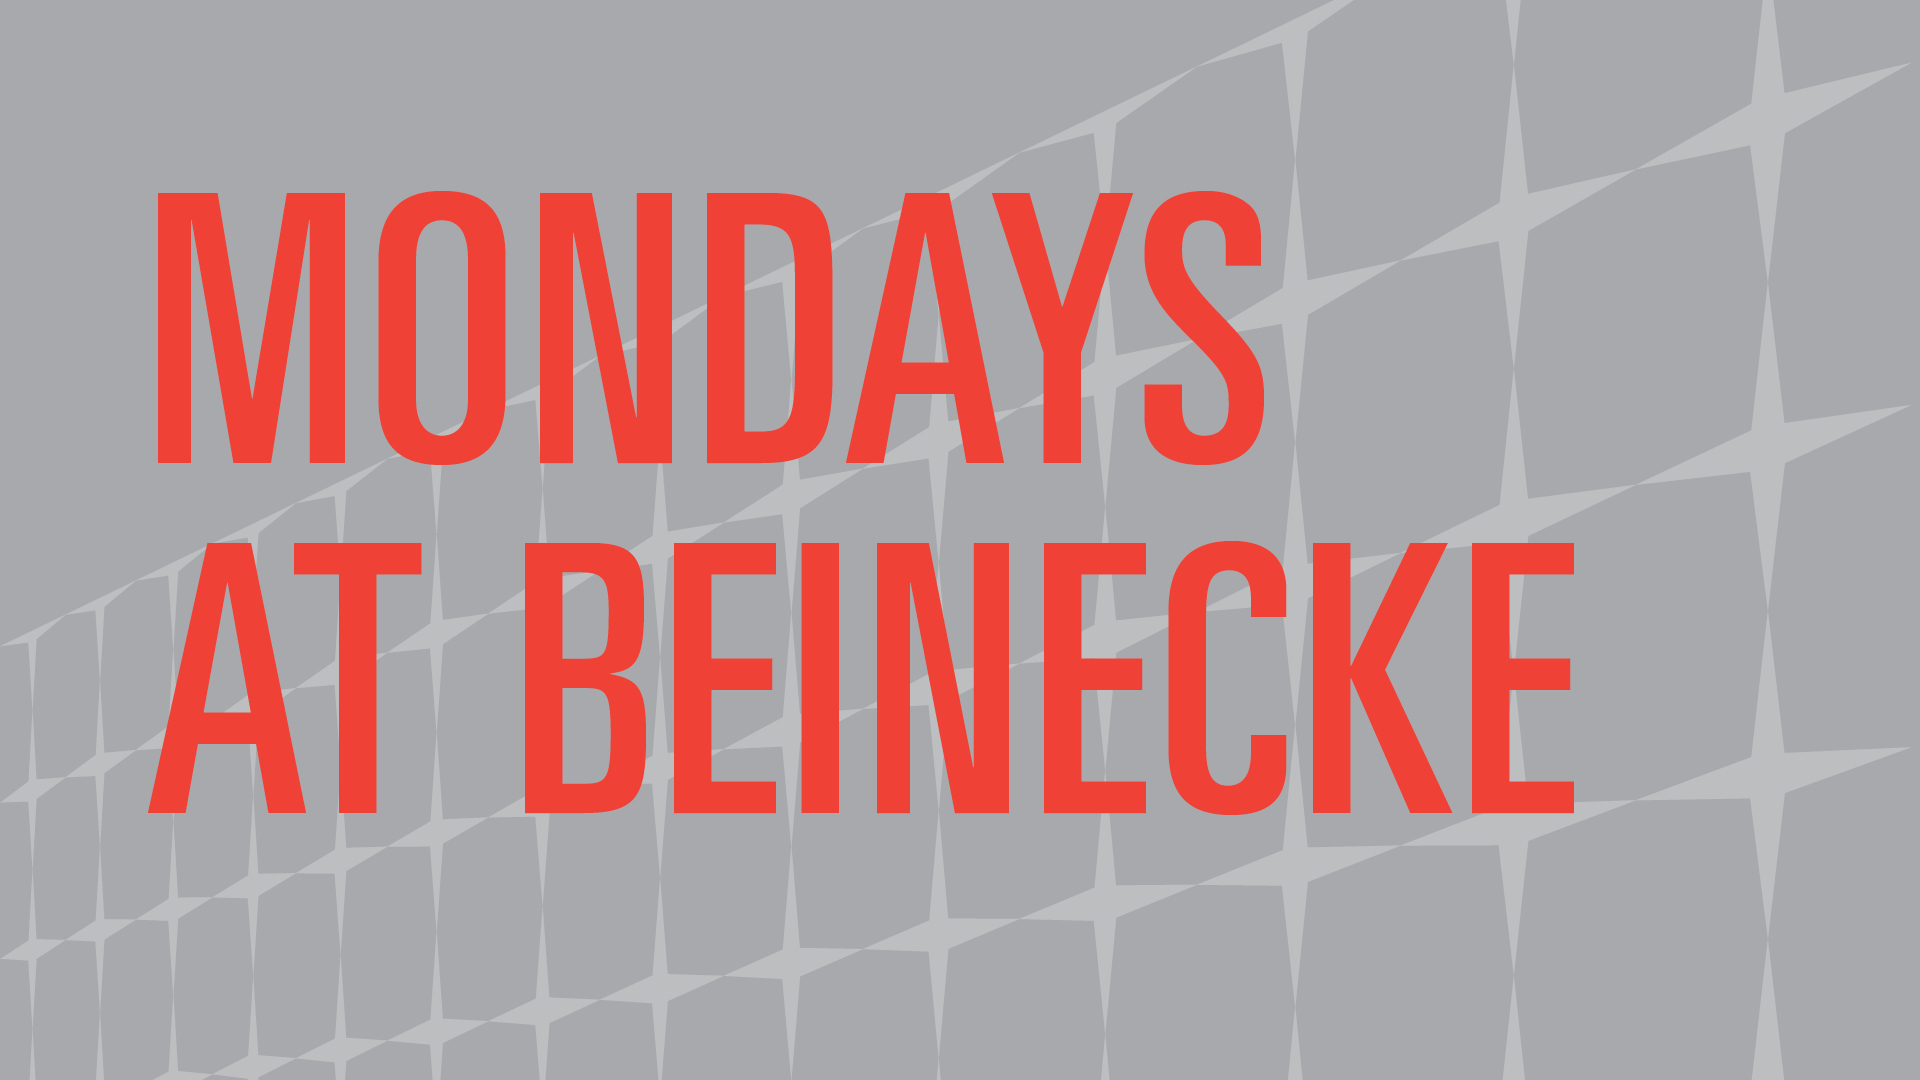 Mondays at Beinecke in bold red letters on a gray background